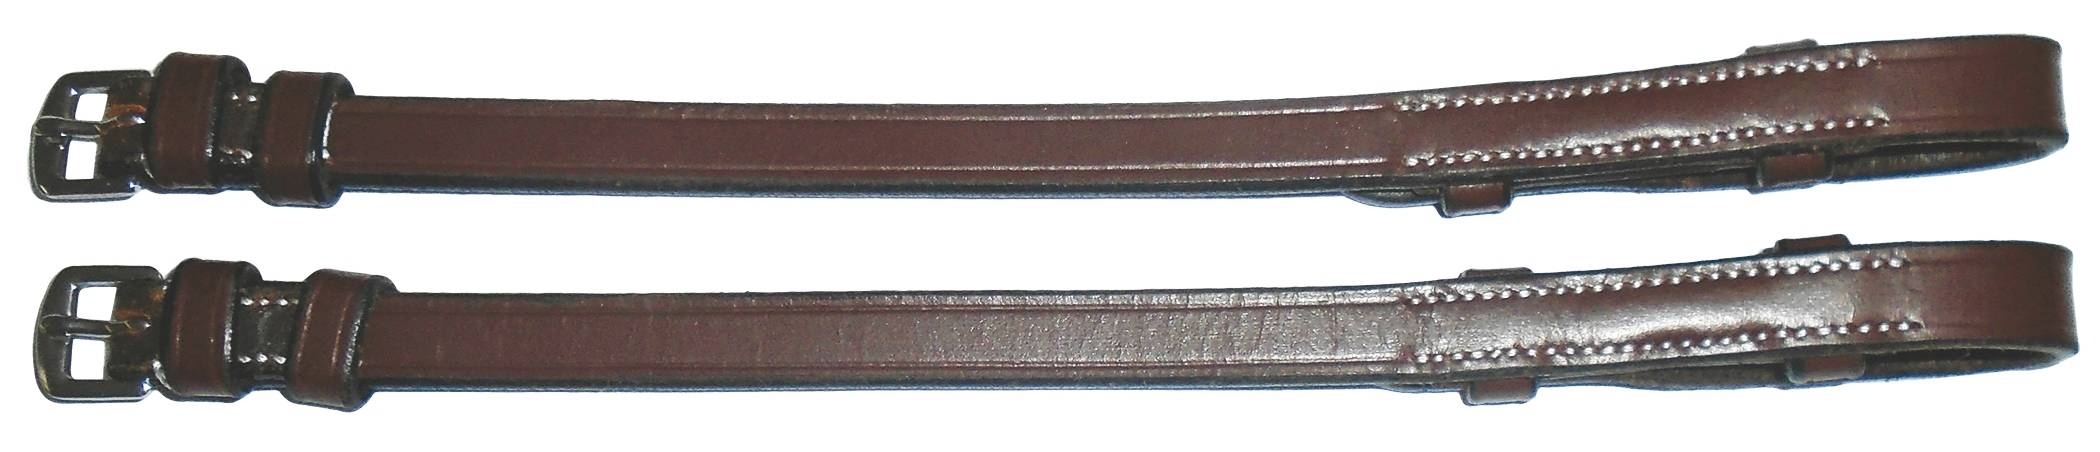 Henri de Rivel Cheeck Straps For Bridle